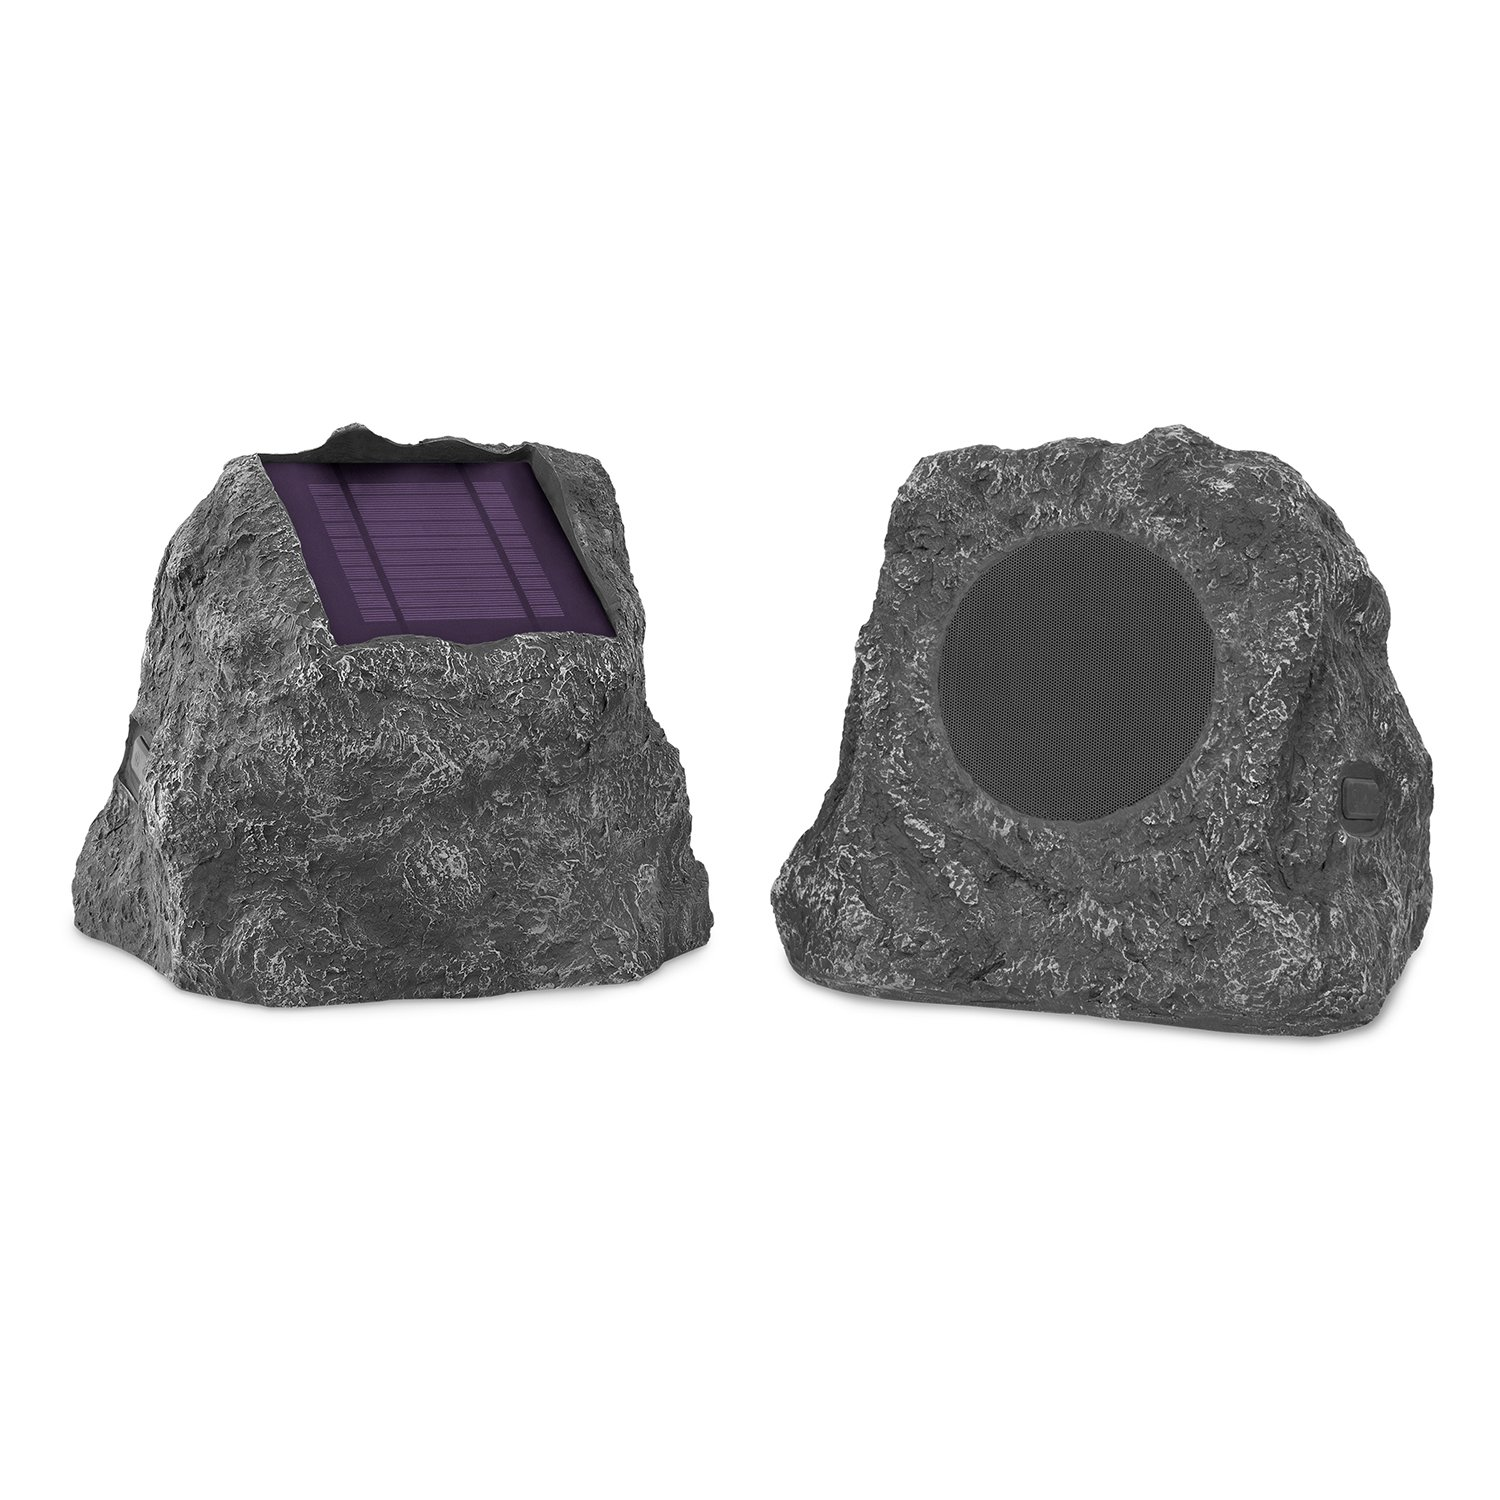 Innovative Technology Premium 5-Watt Bluetooth Outdoor Rock Speakers with A/C Adaptor, Built In Rechargeable 5200mAh Battery and Solar Panels, Pair, Charcoal by Innovative Technology